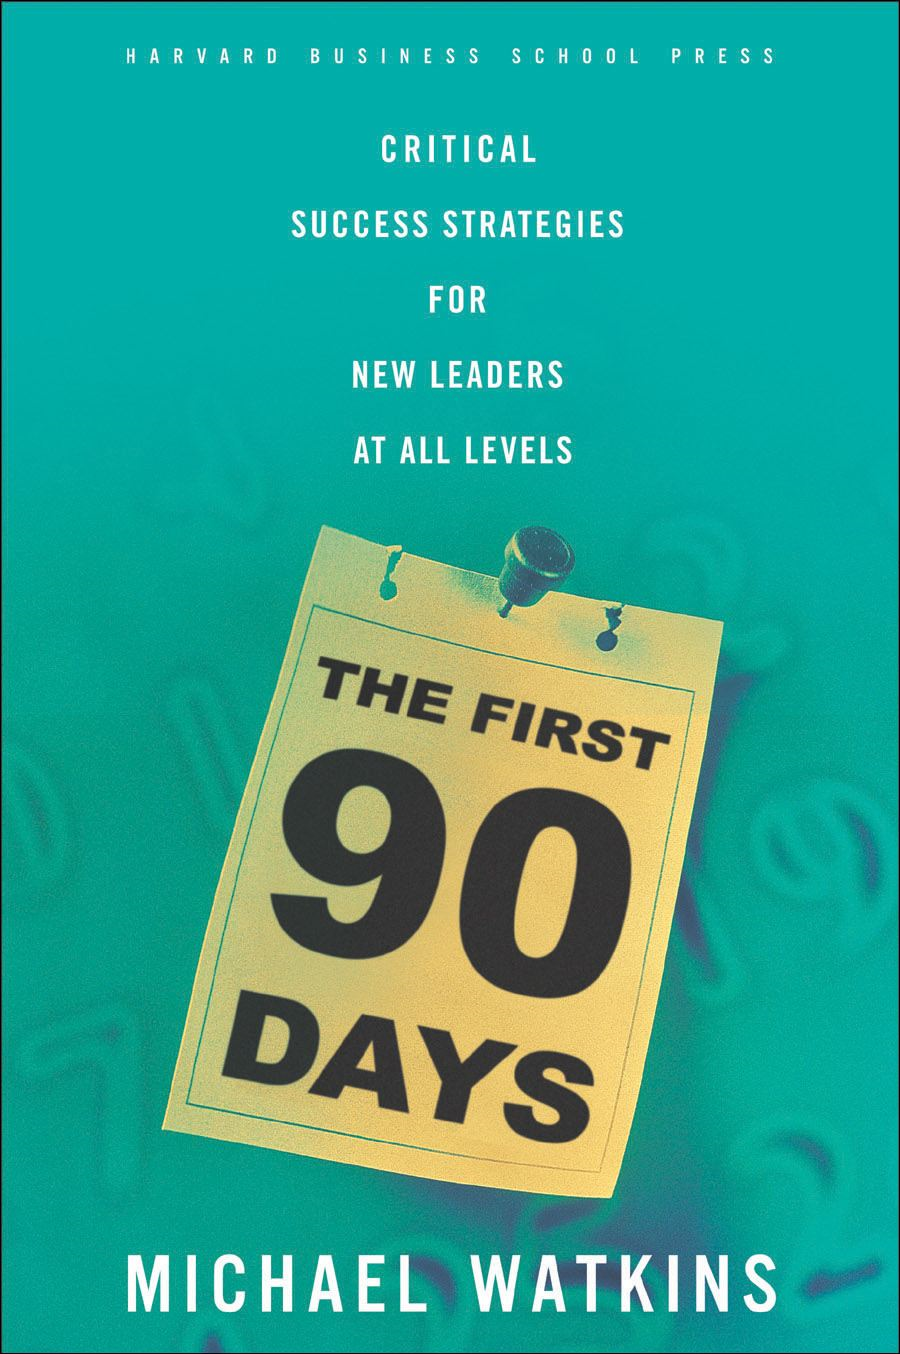 The First 90 Days By: Michael Watkins